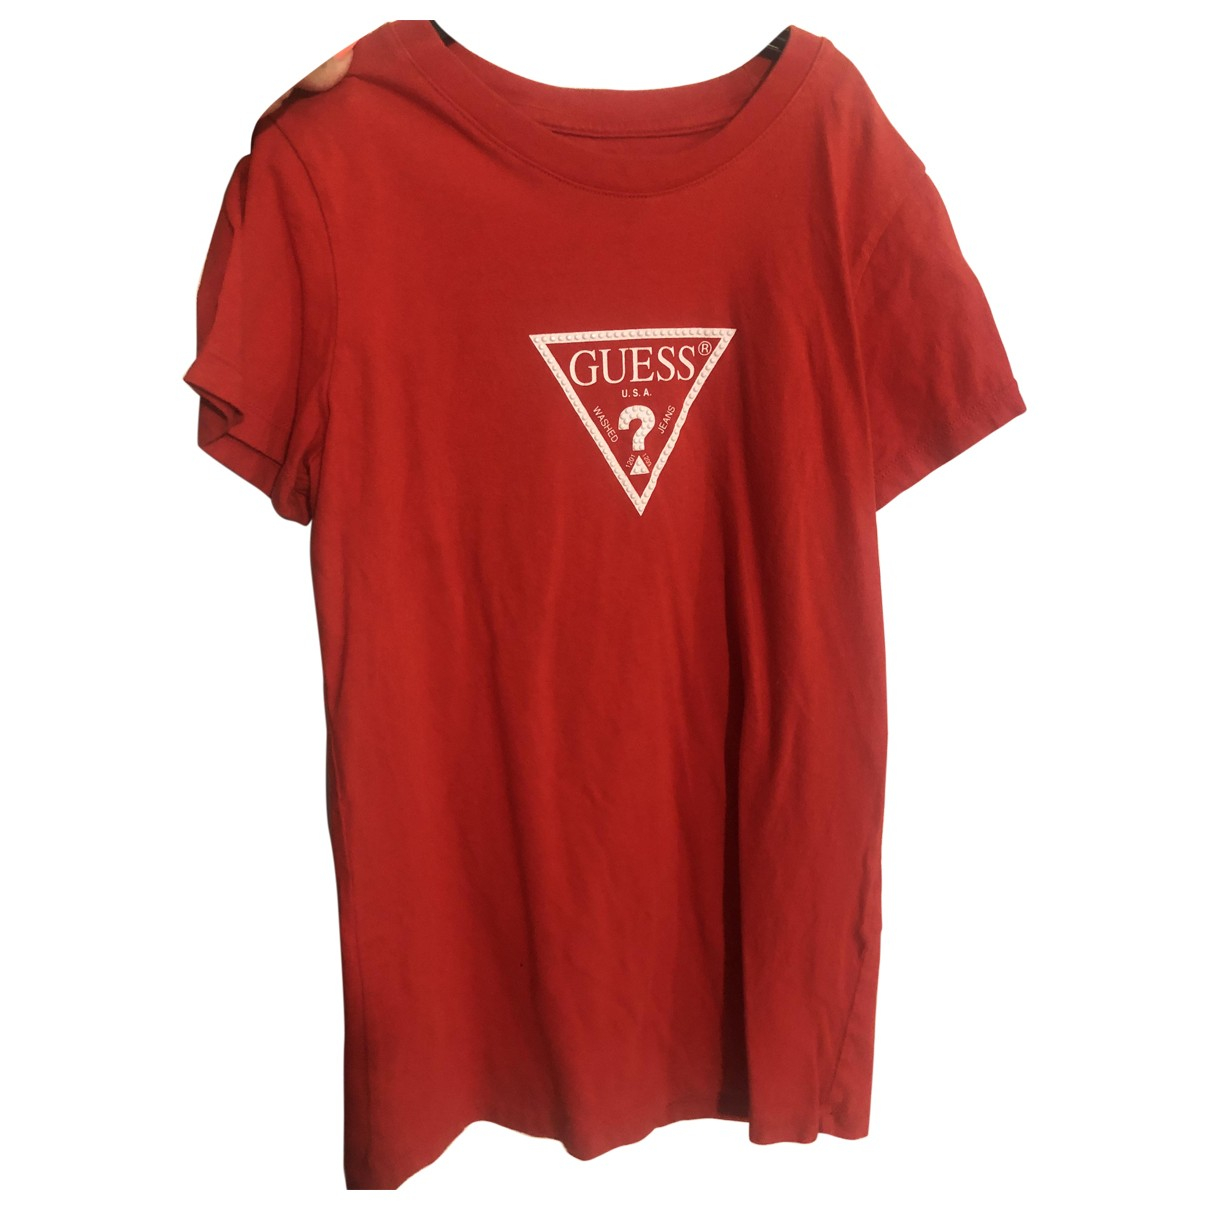 Guess \N Red Cotton  top for Women XS International